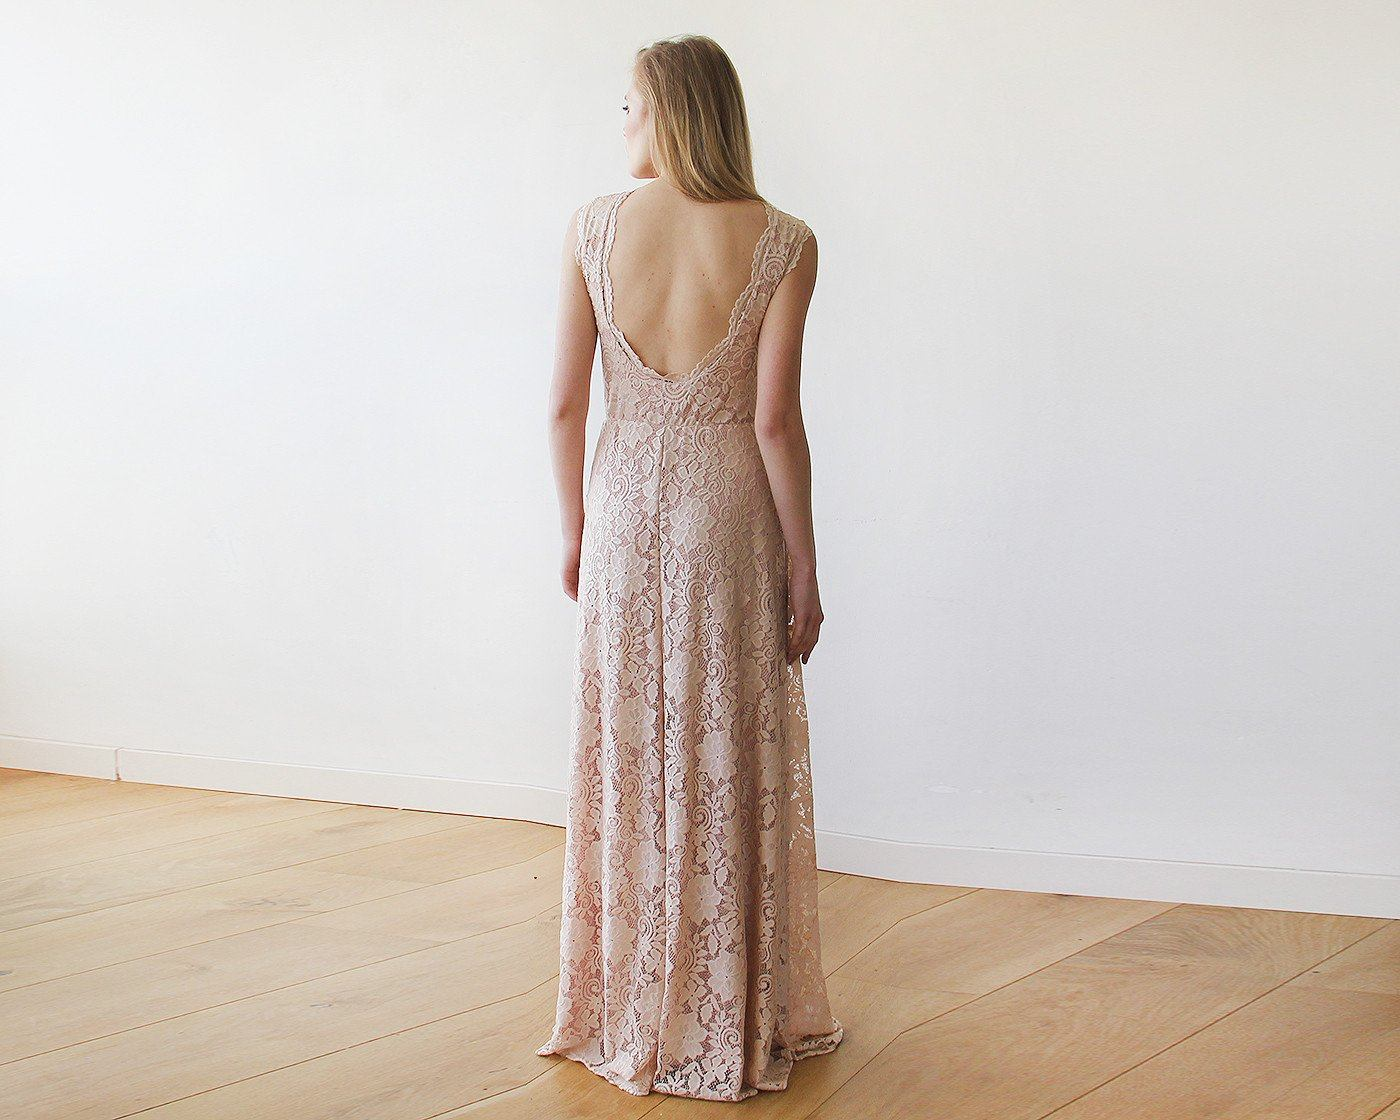 Open back lace maxi dress sleeveless pink blush 1141 - Blushfashion